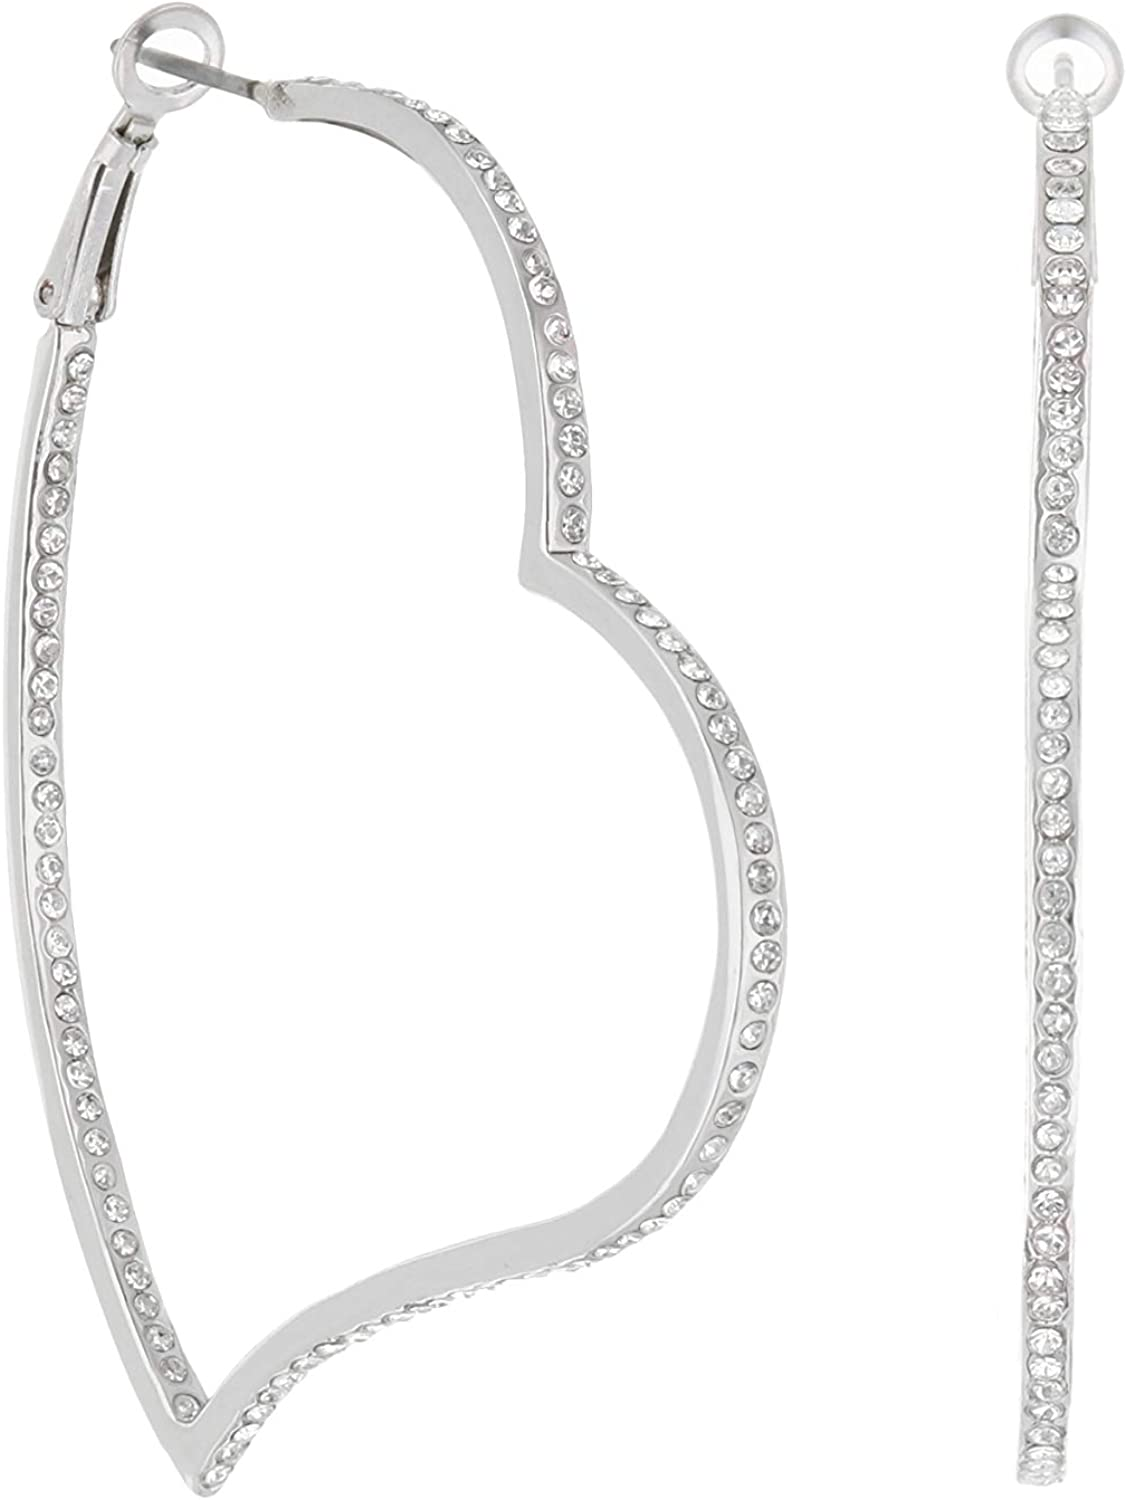 Pave Heart Hoop Earrings - French Clip